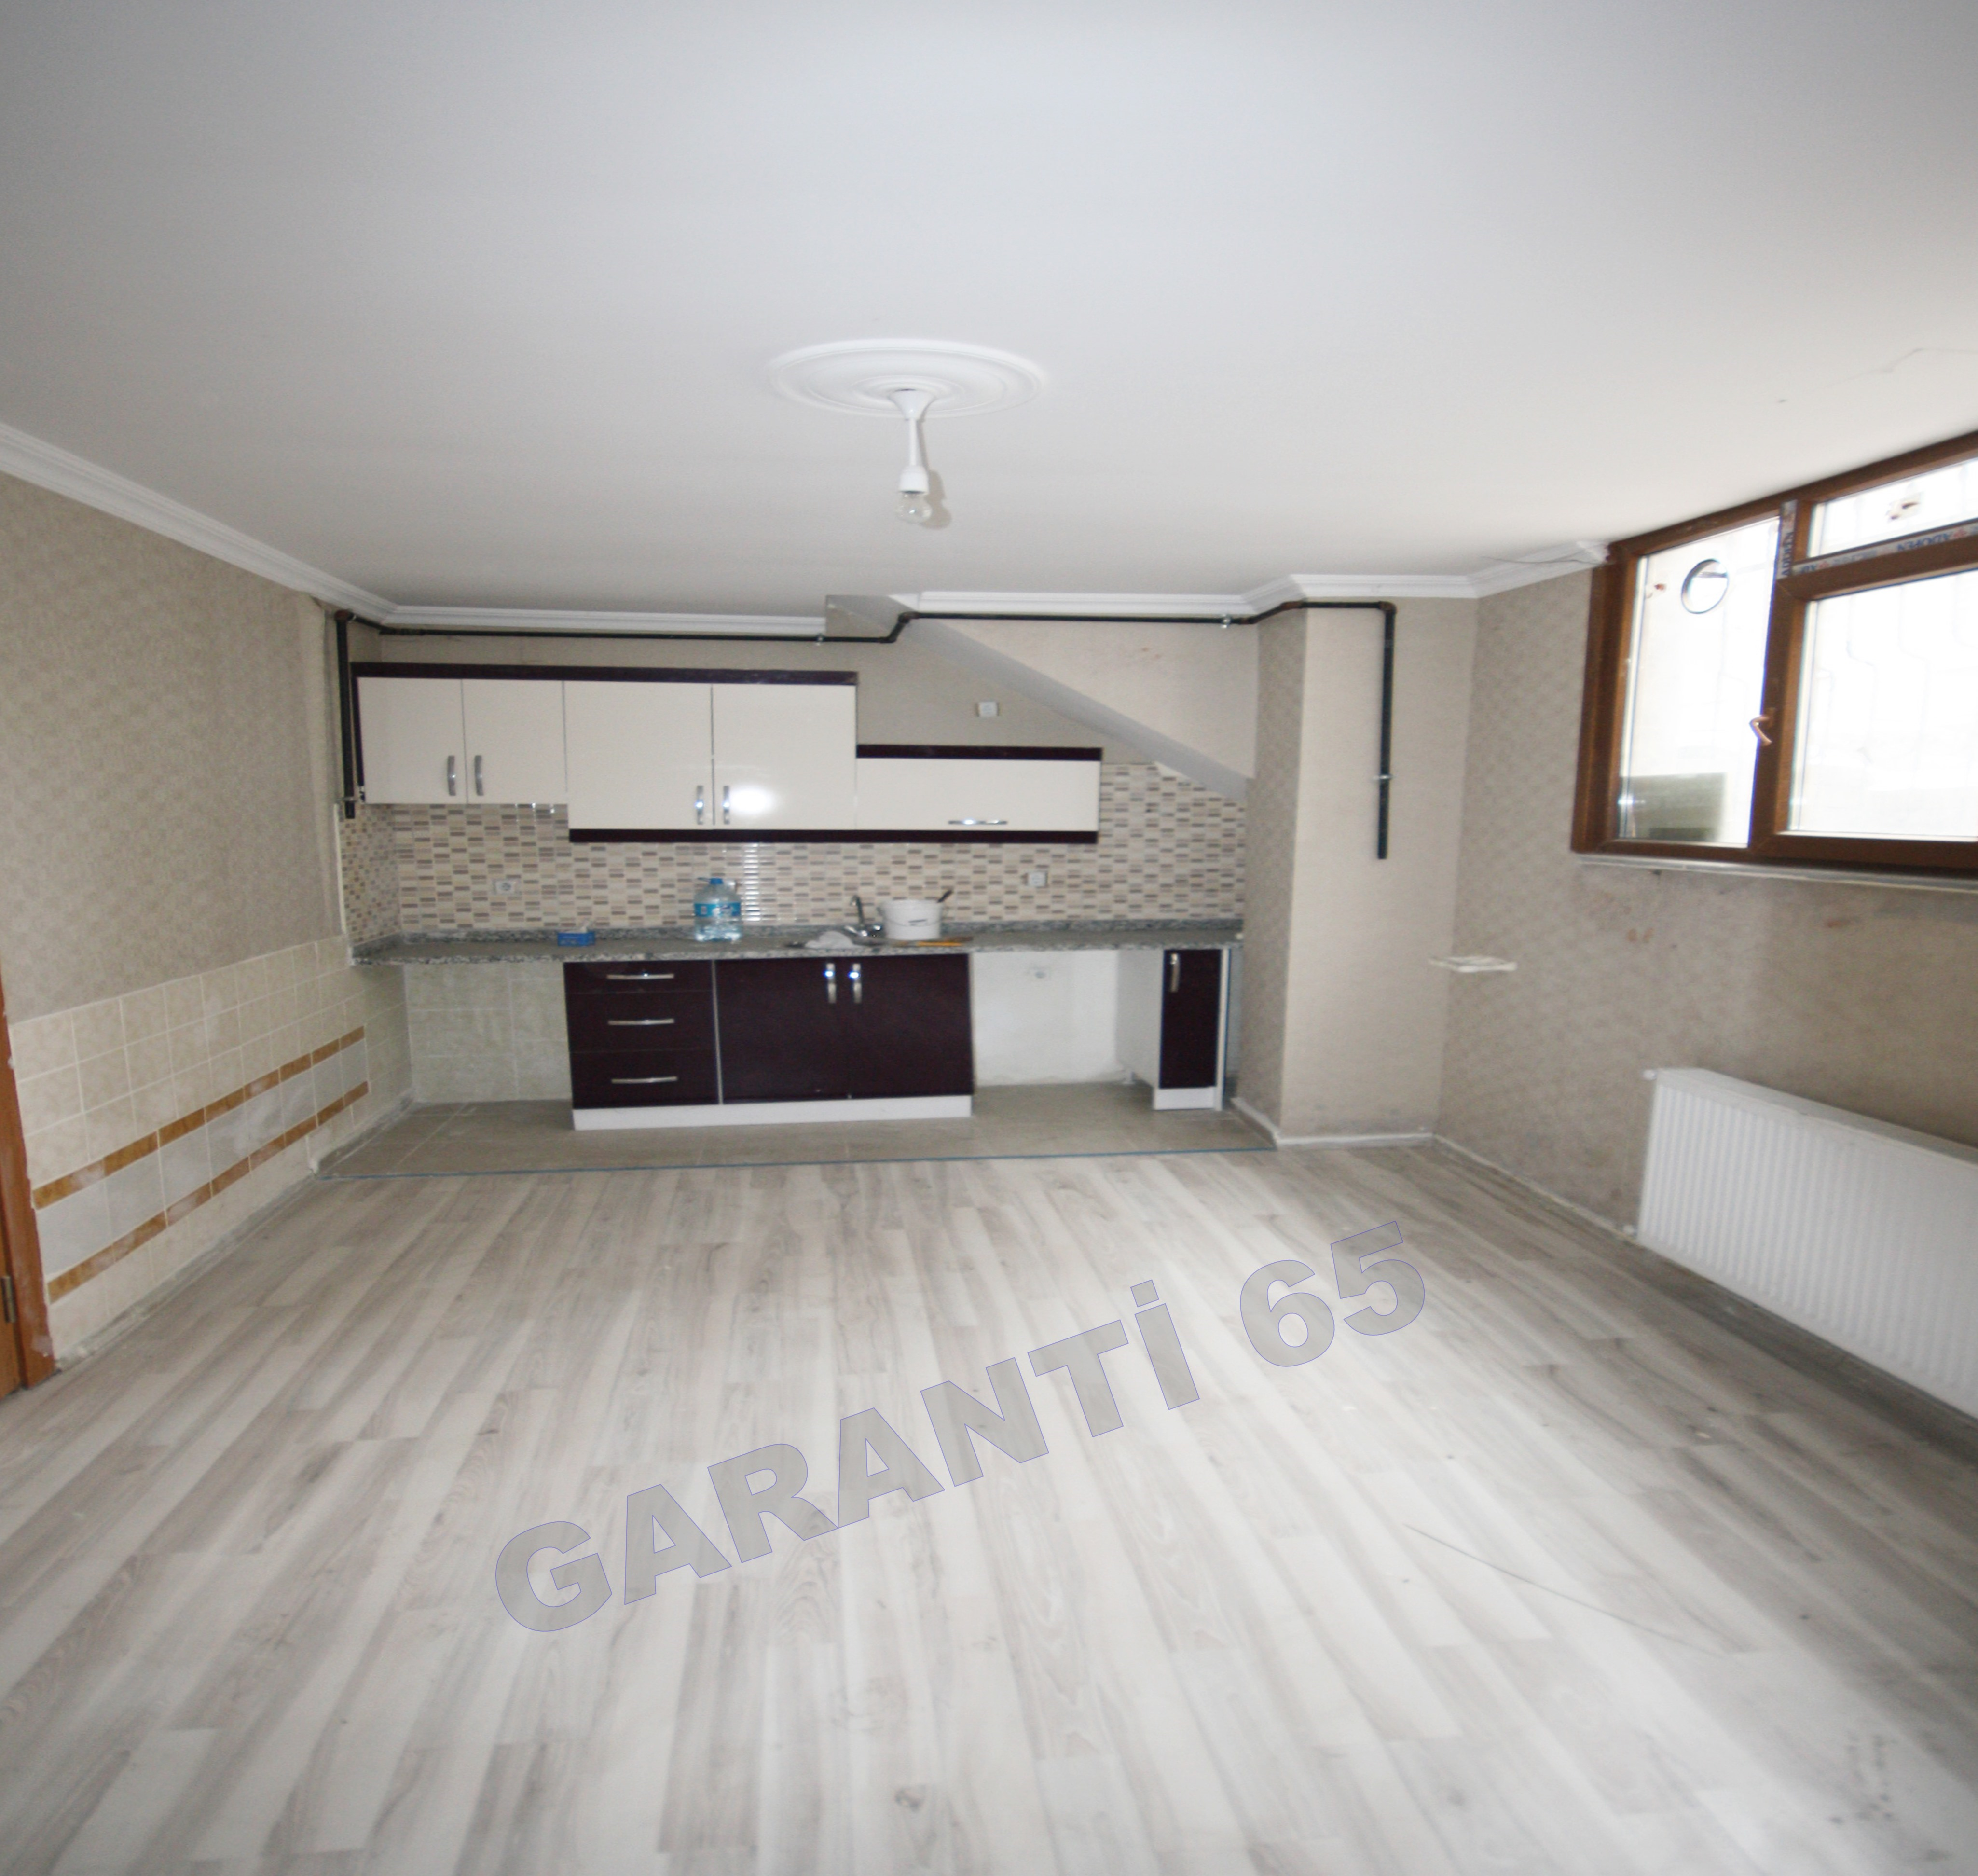 Low Priced Apartments: Apartment For Sale In Istanbul At Low Price (Turkey